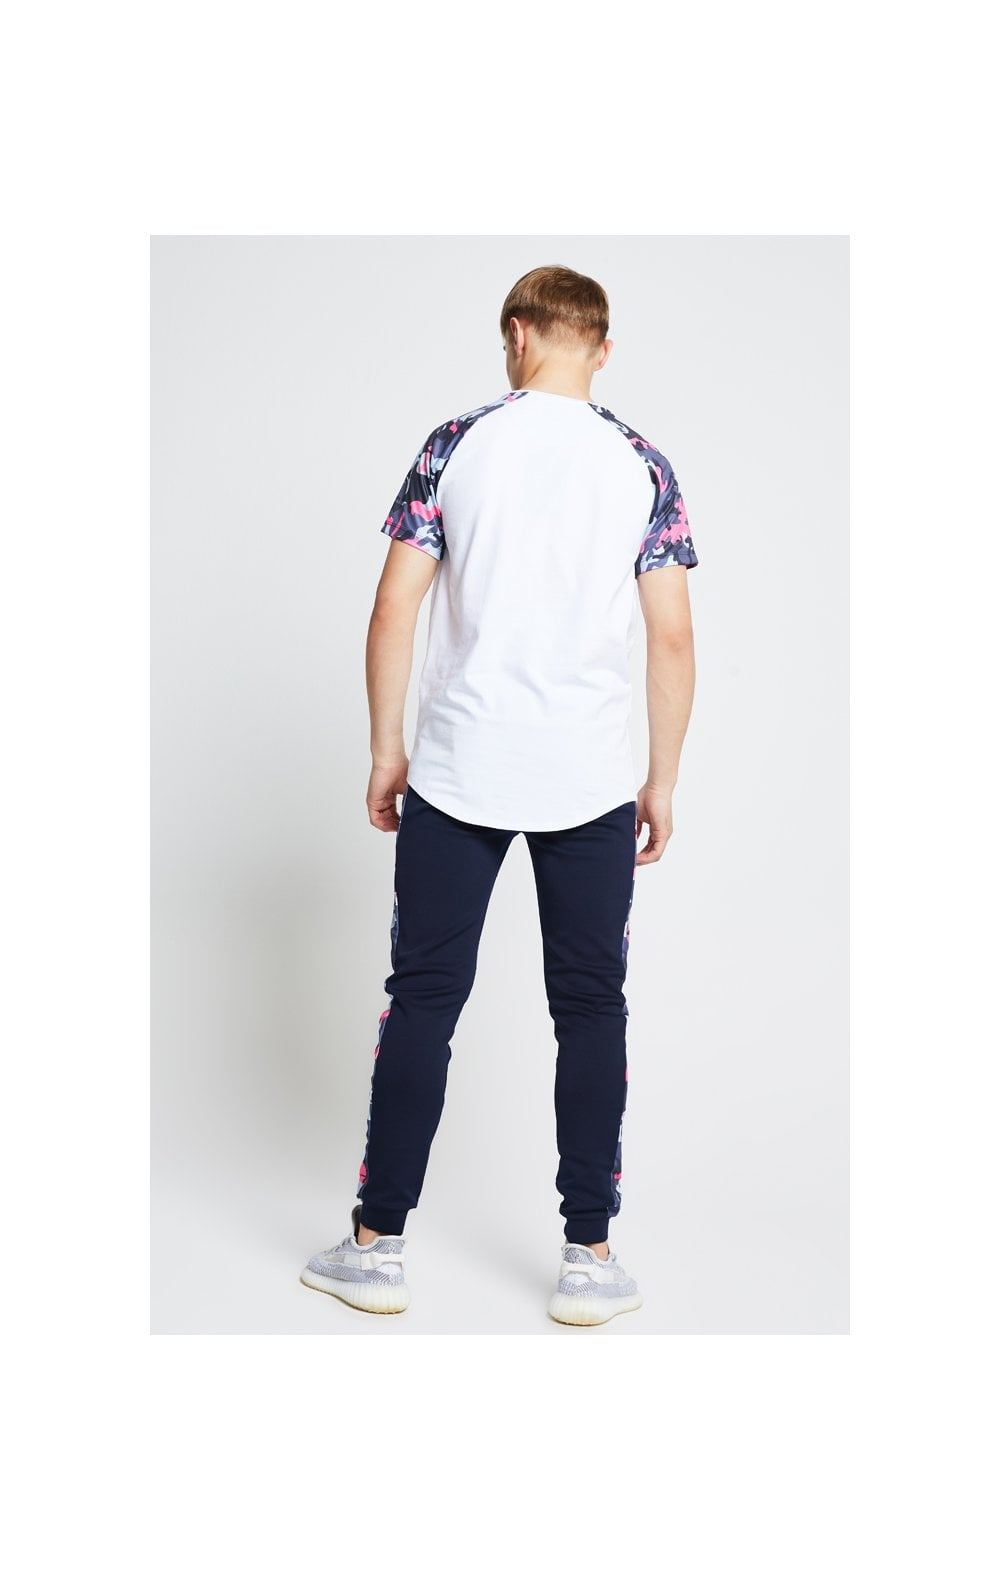 Illusive London Raglan Tee – White & Neon Pink Camo (5)